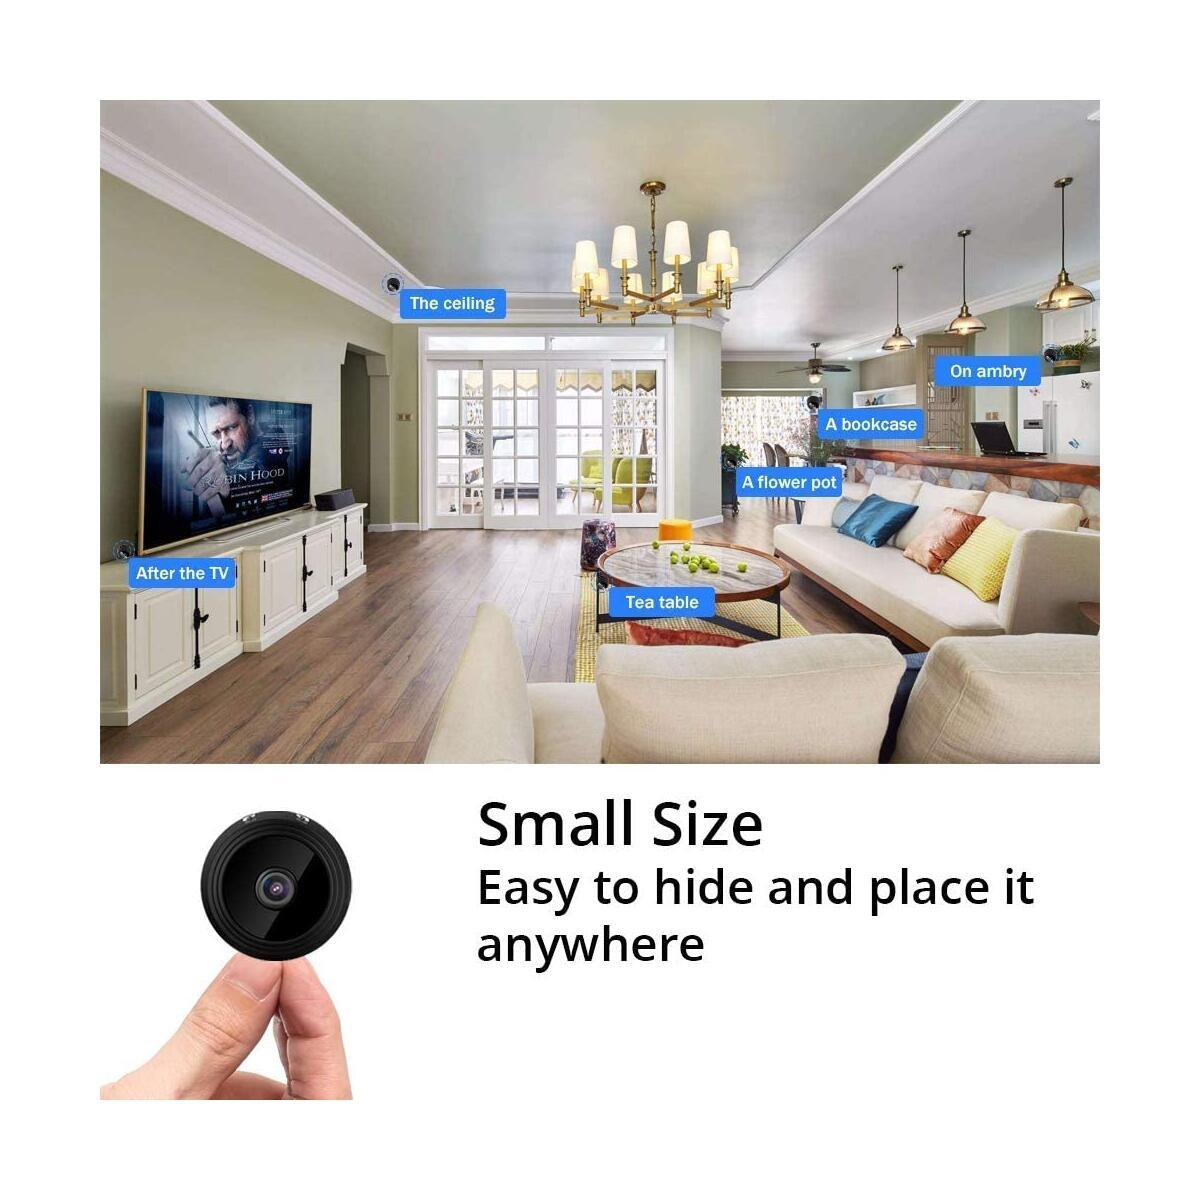 Wireless Mini Camera 1080P - Night Vision - Motion Detection - iOS Android App